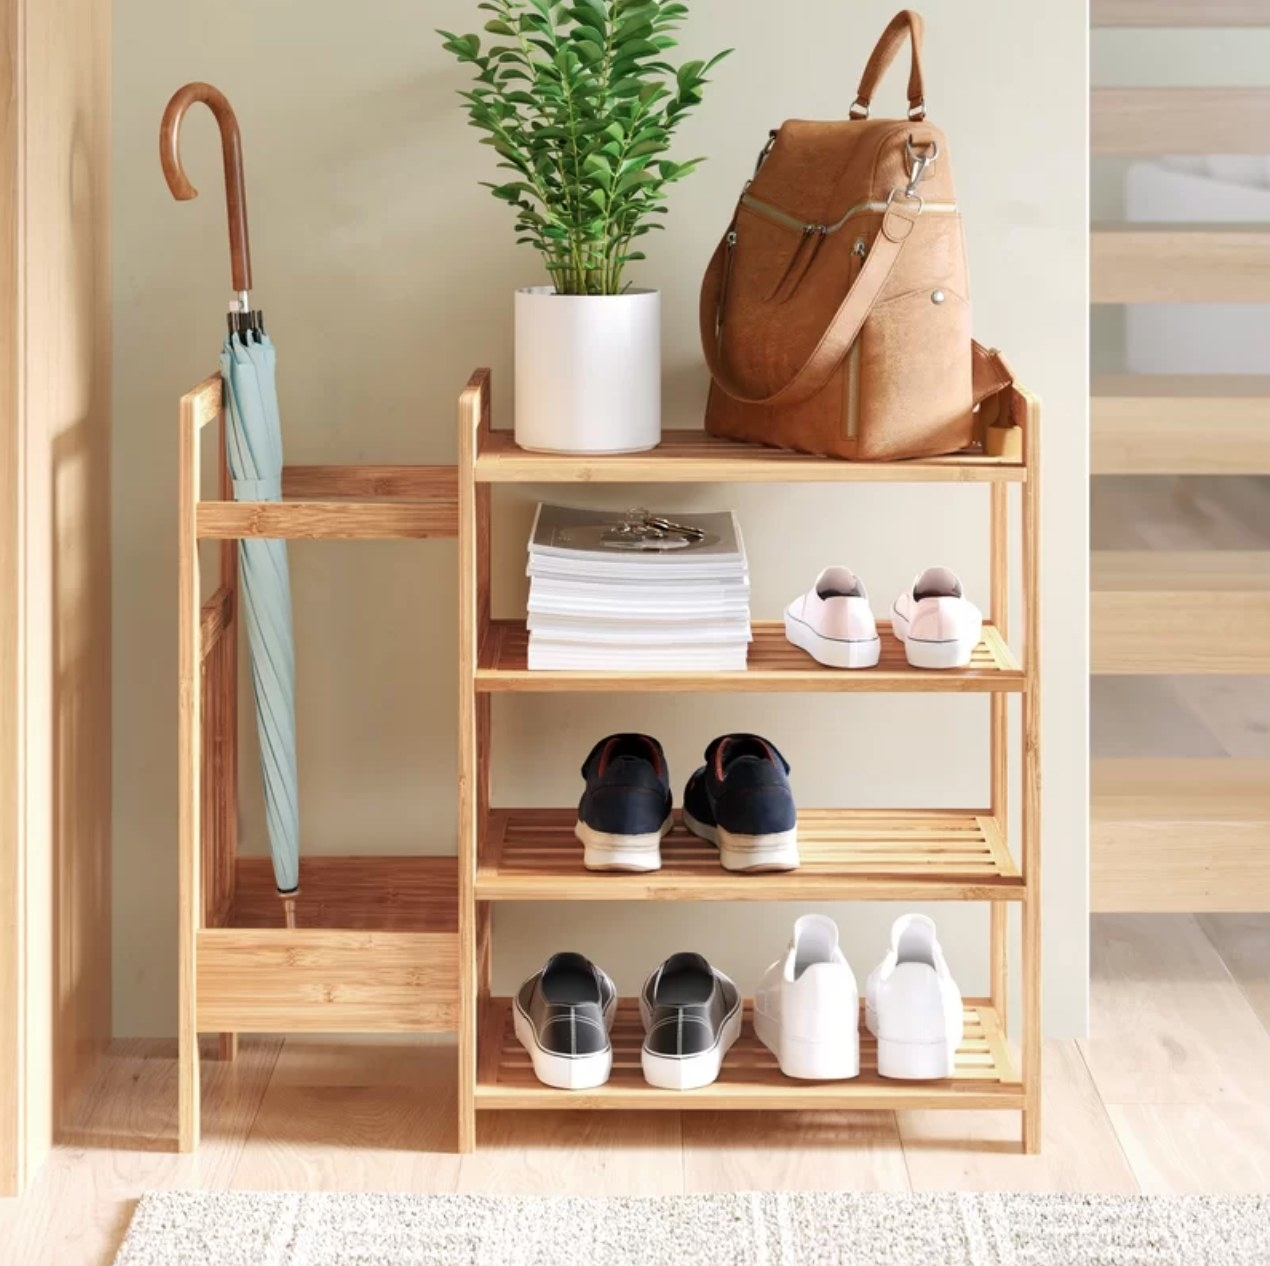 The bamboo shoe rack being used to hold shoes, an umbrella, and a purse